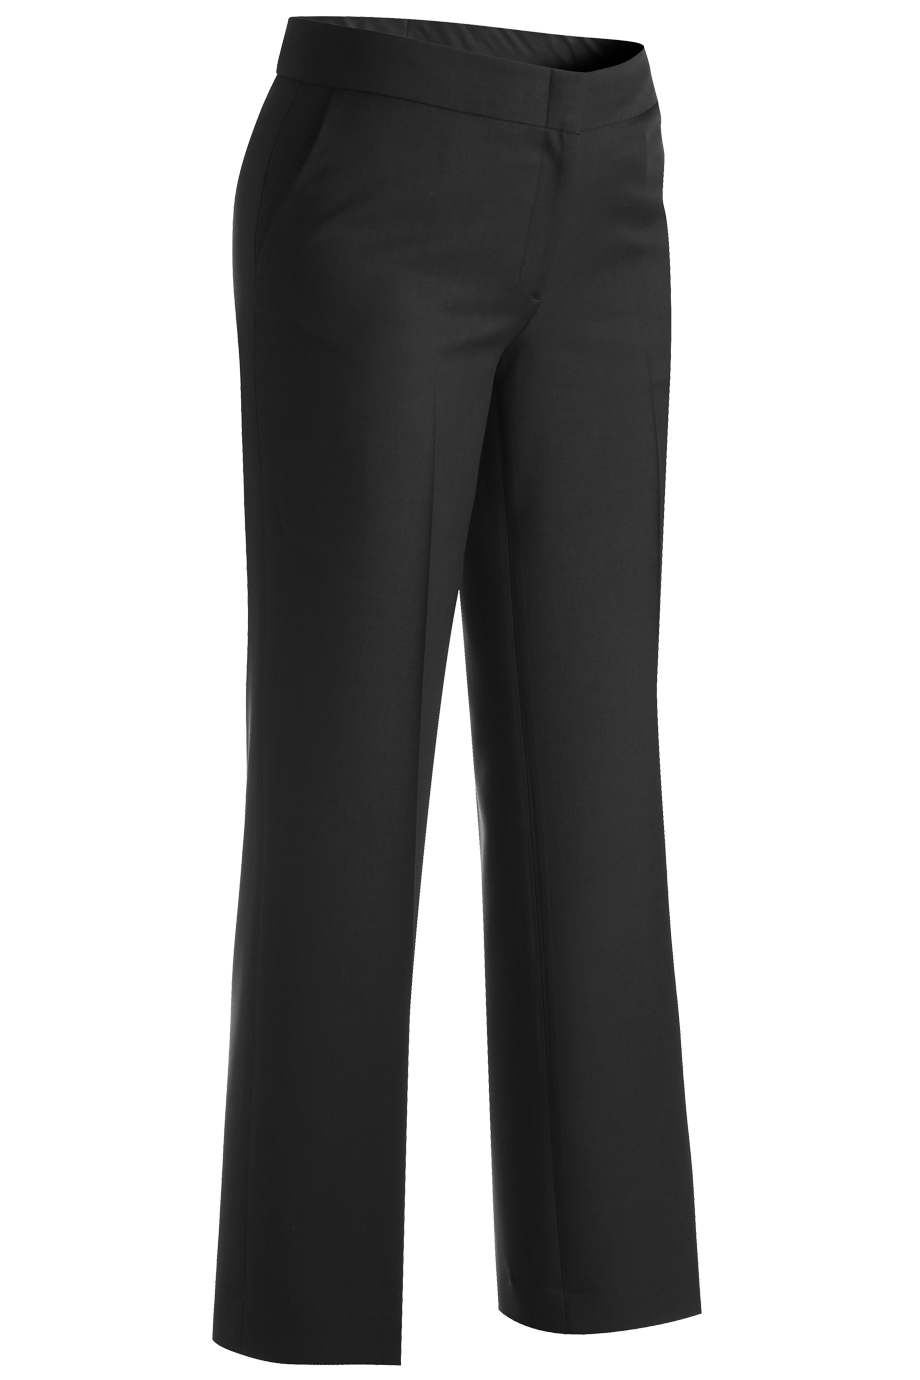 Women's Washable FF Suit Pant 8525